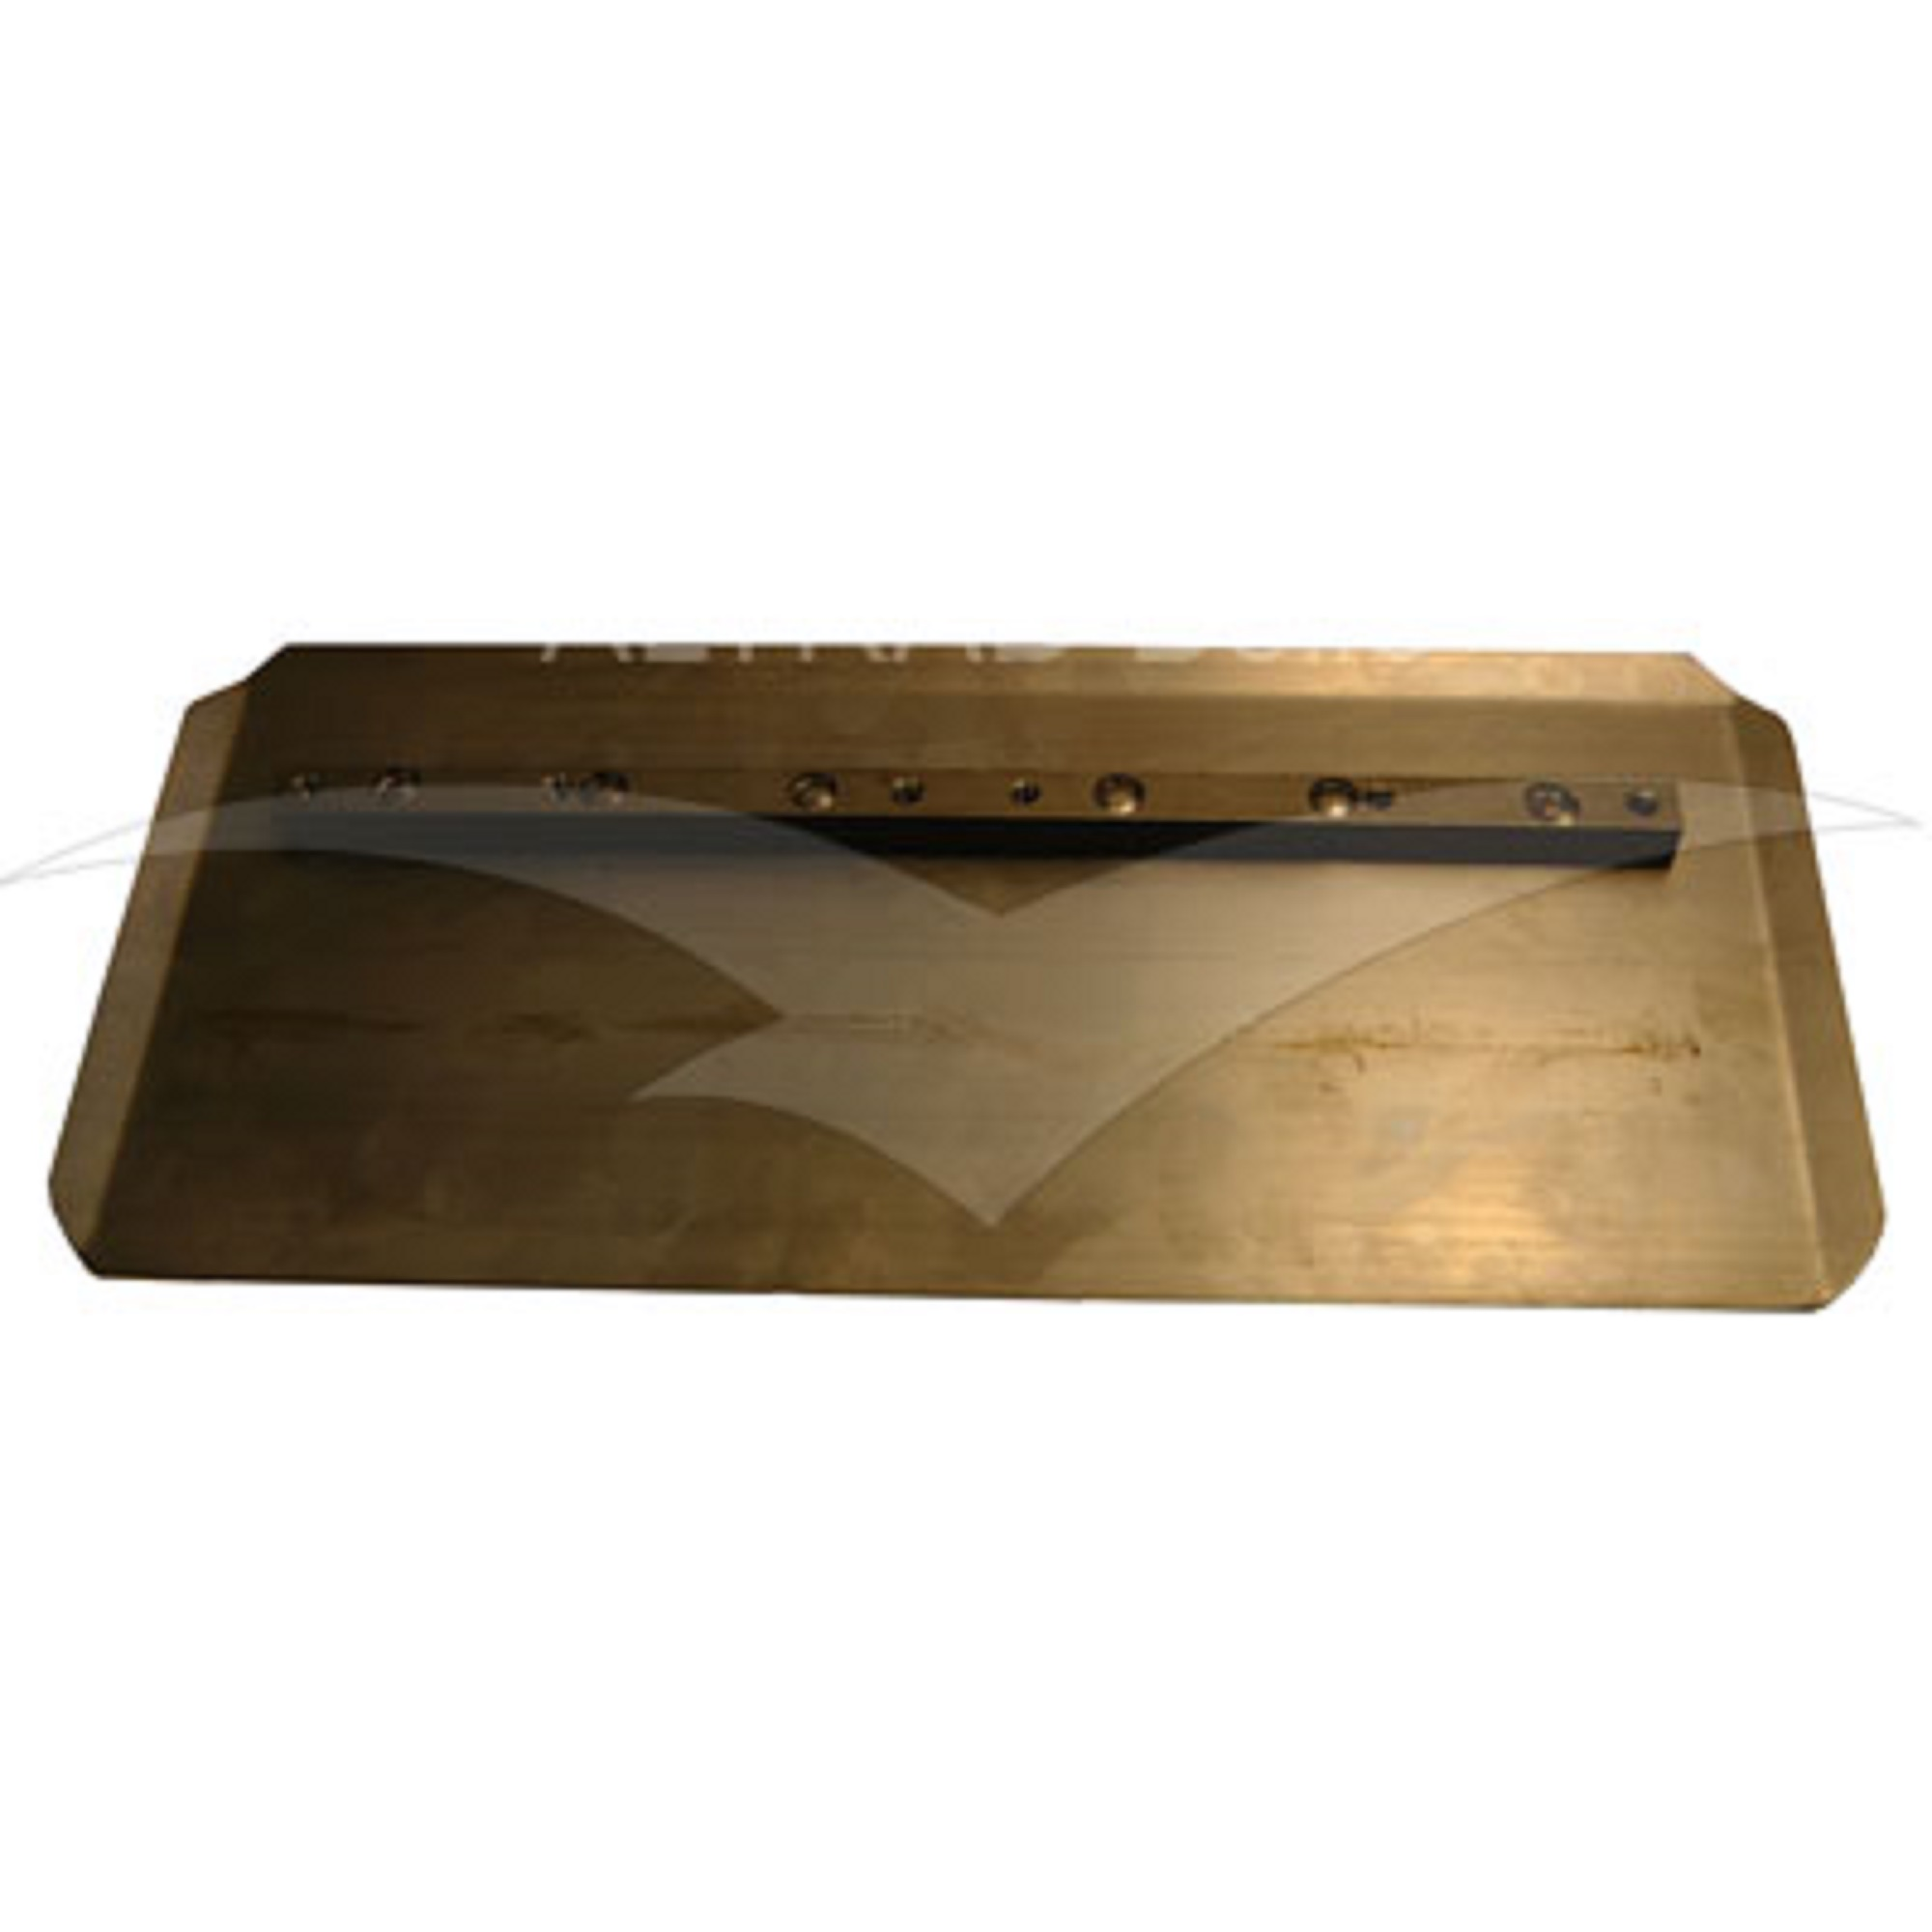 Bronze coloured rectangular metal combination blade for the Belle PRO 1200 trowel